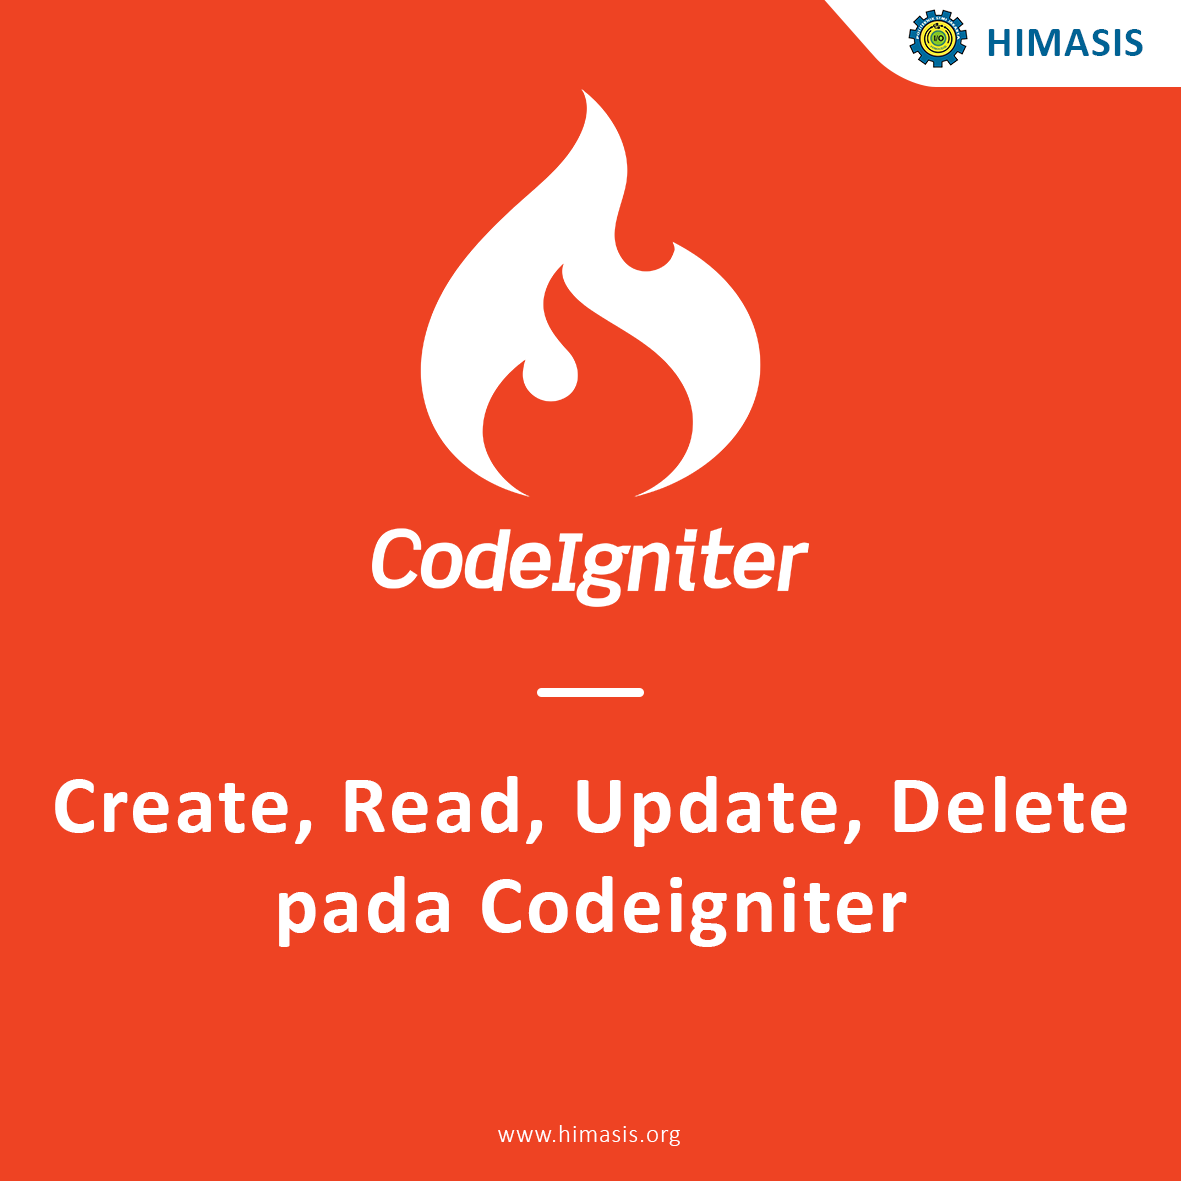 Create, Read, Update, Delete pada Codeigniter